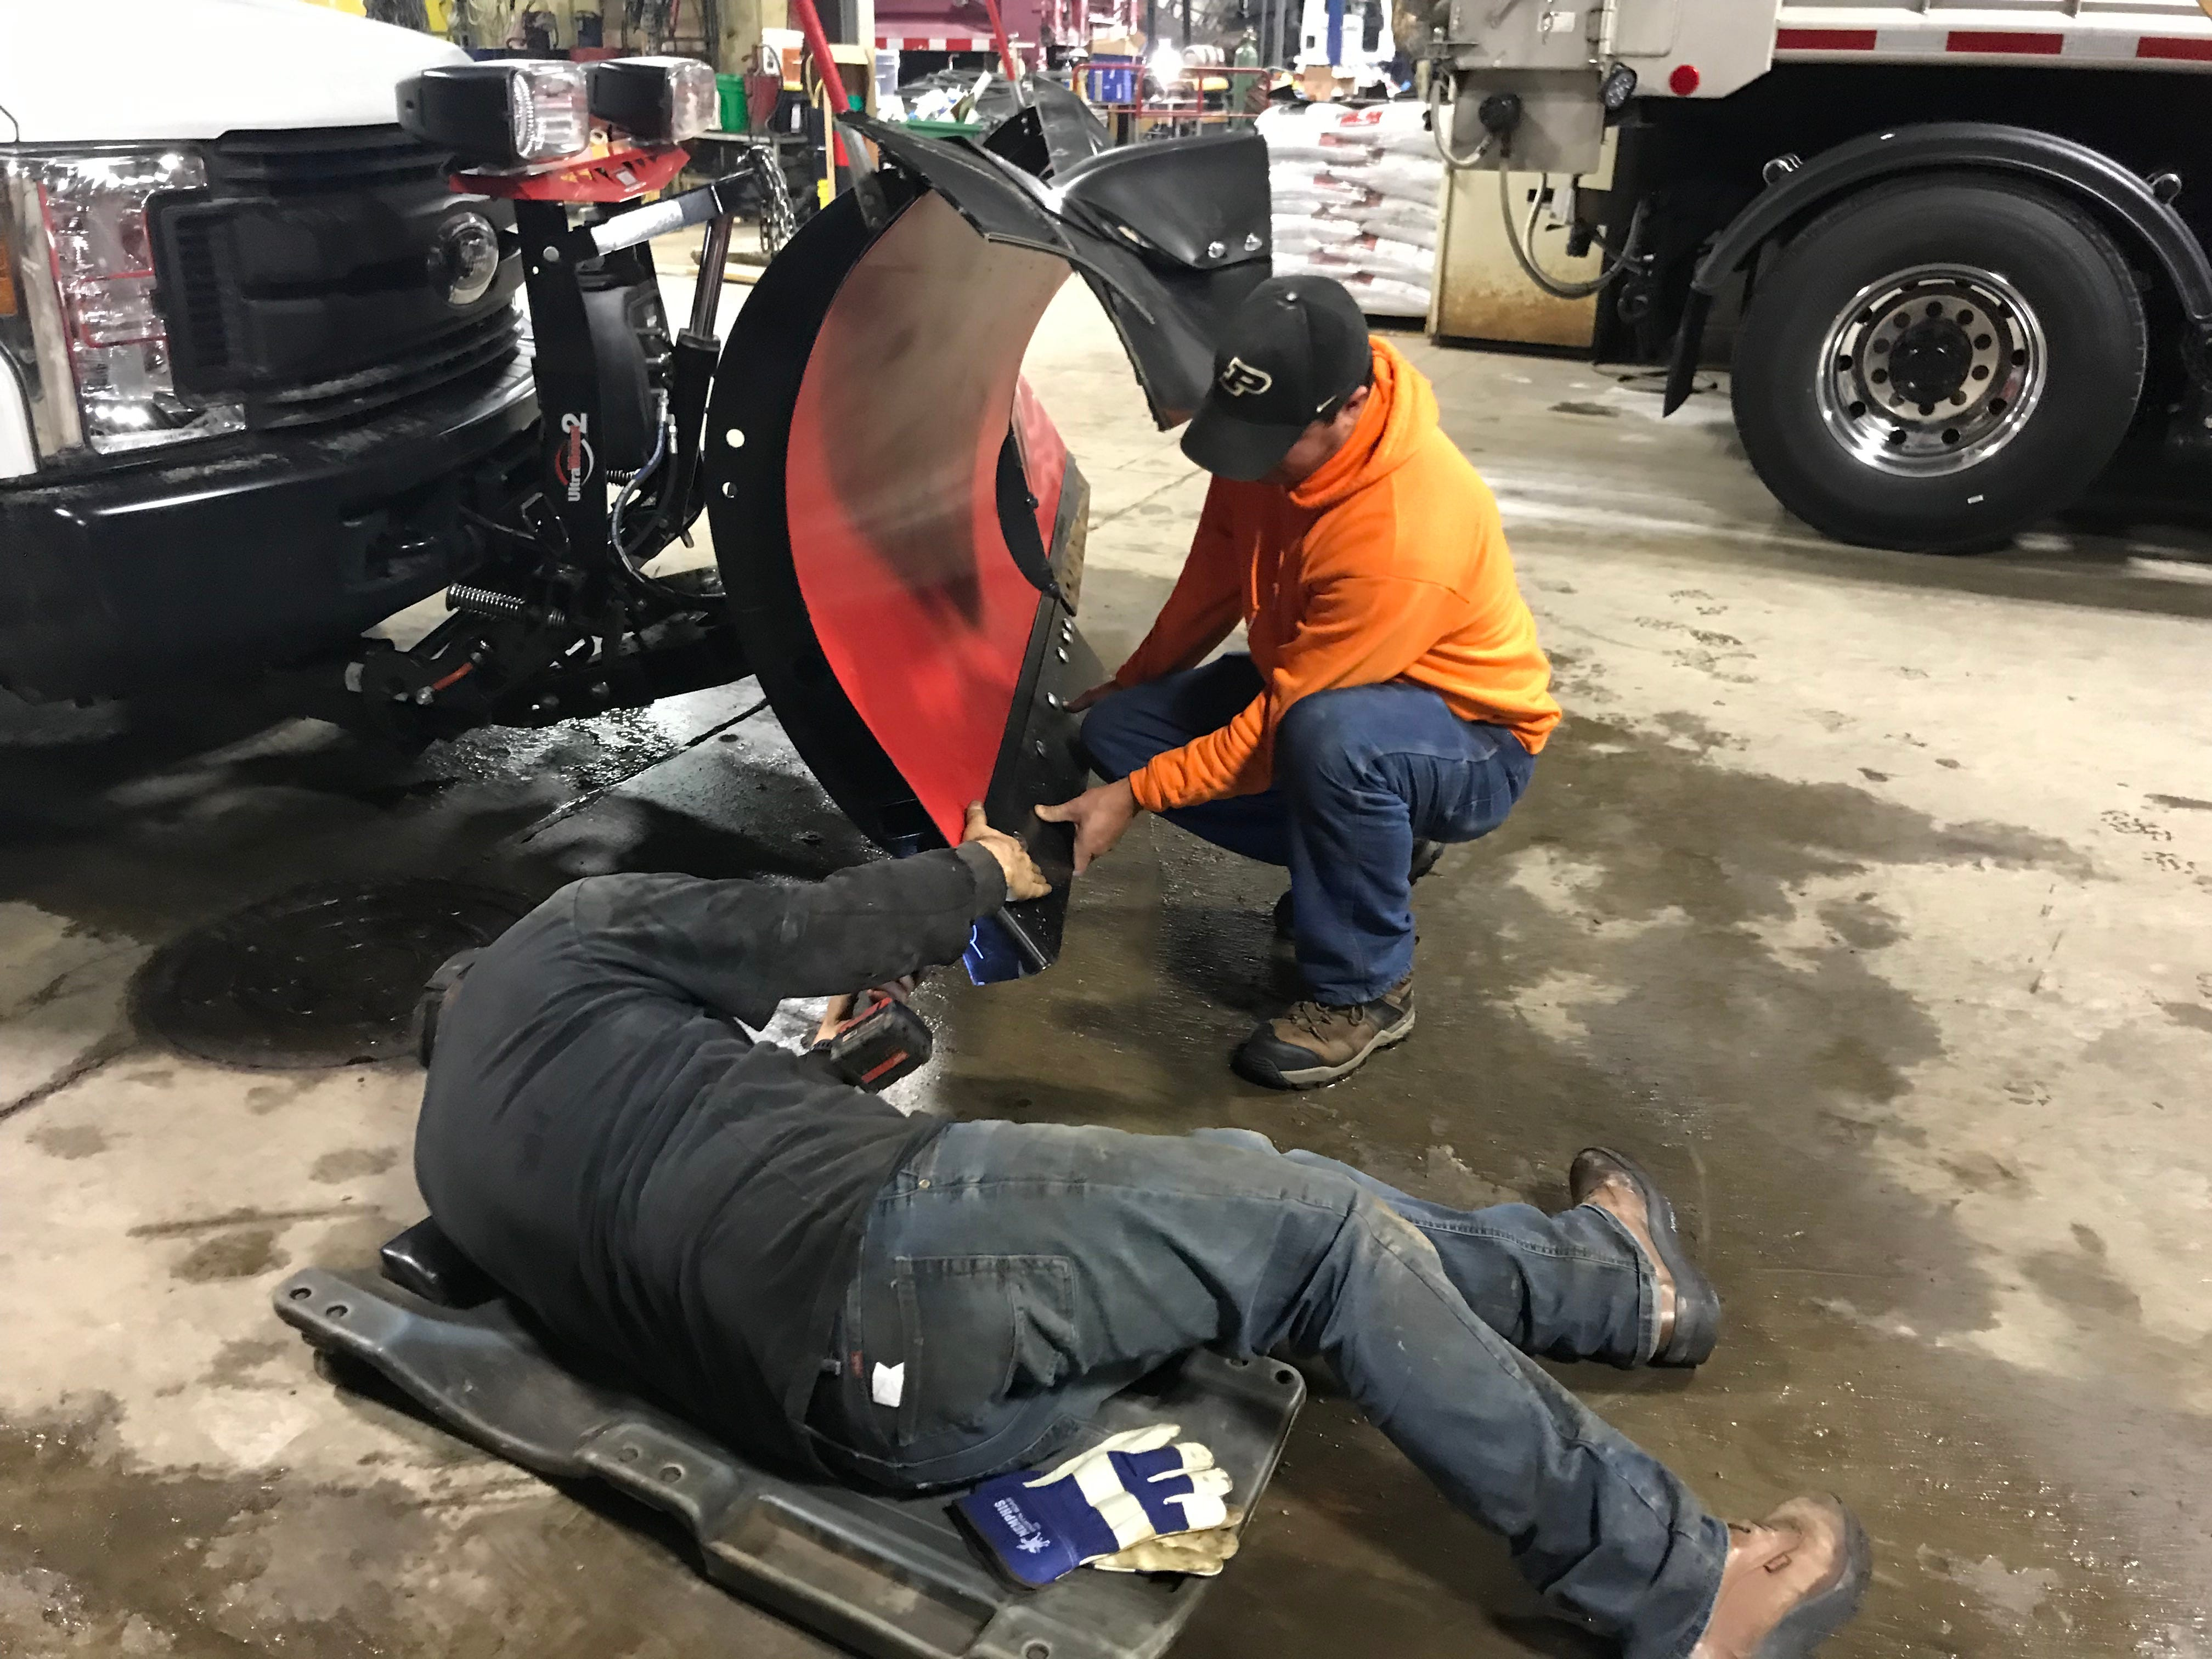 Doug Perkins and Jeremy Stinson of the West Lafayette Street Department replace a snow plow bade on a pickup truck in preparation for Saturday's snowstorm, which is expected to bring 4 to 5 inches of snow and high winds.